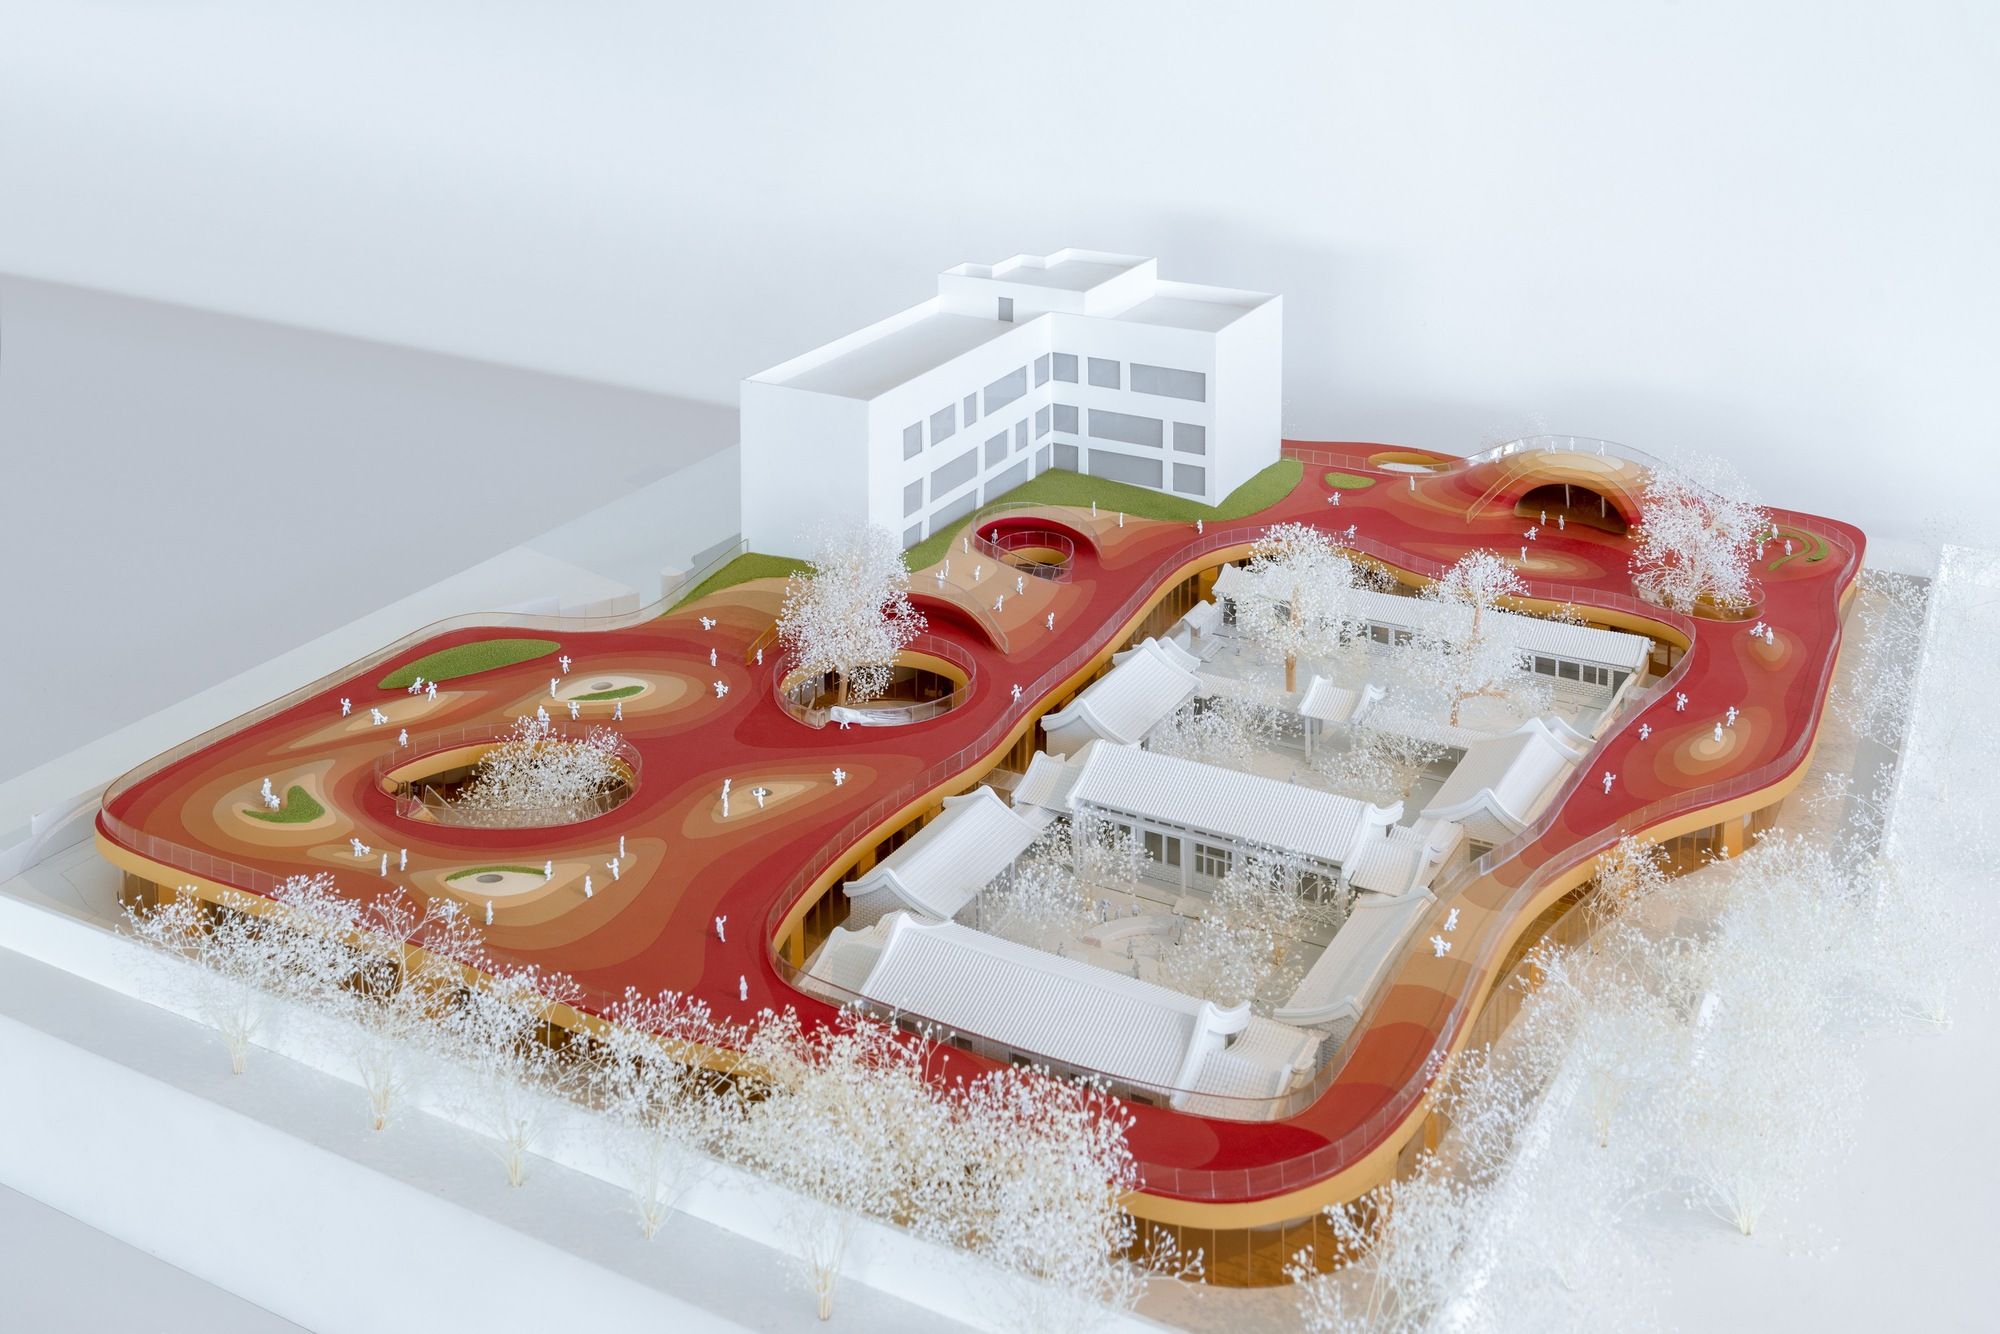 16_14_MAD_Courtyard_Kindergarten_model_by_CreatAR_Images.jpg